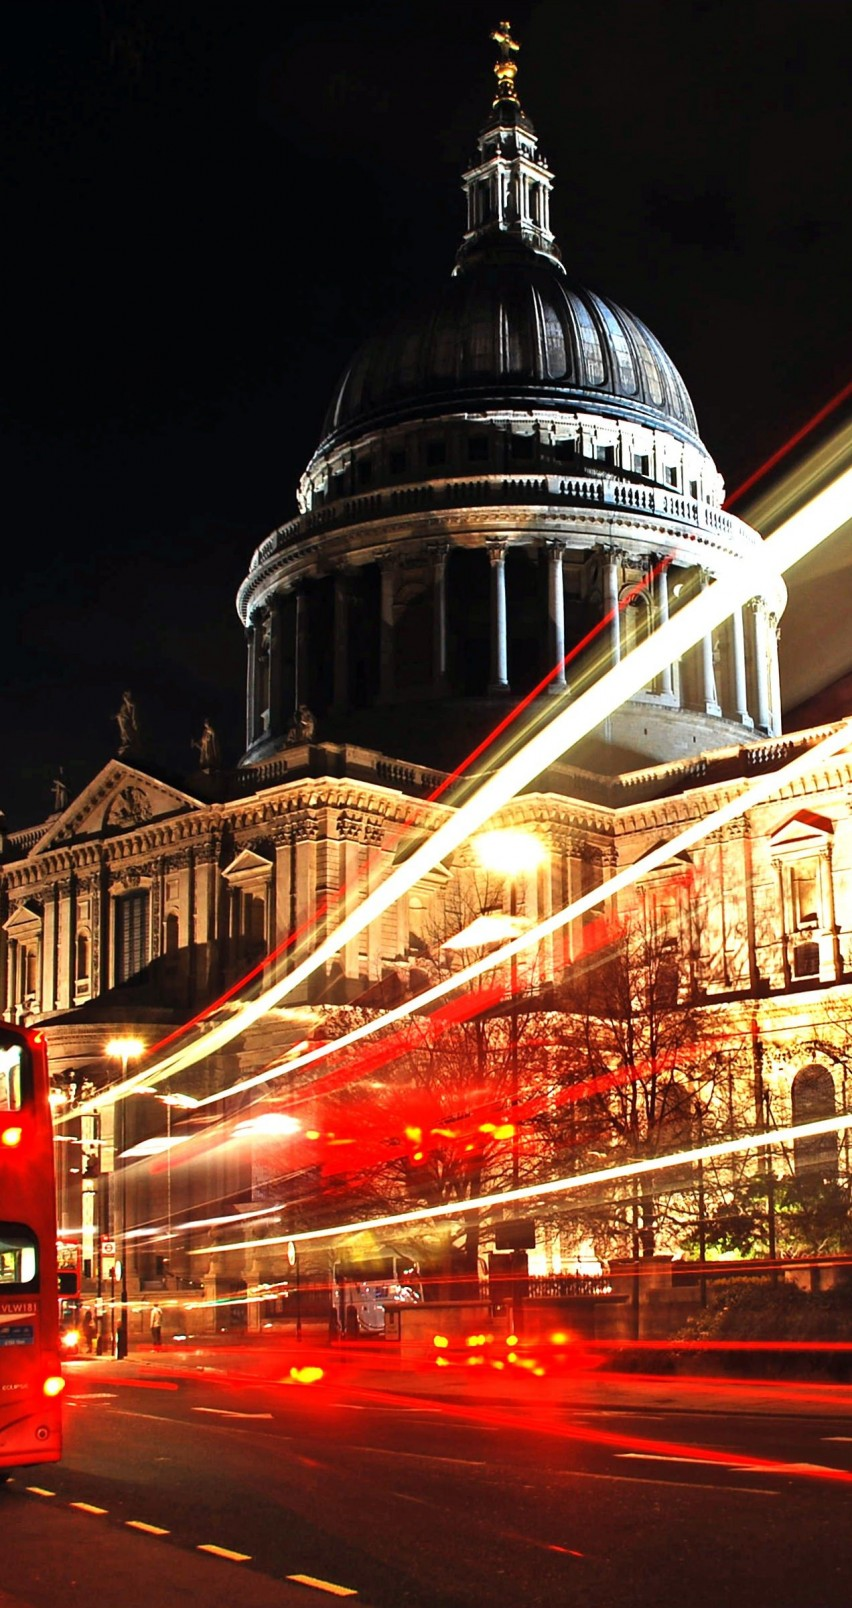 St. Paul's Cathedral at Night Wallpaper for Apple iPhone 6 / 6s